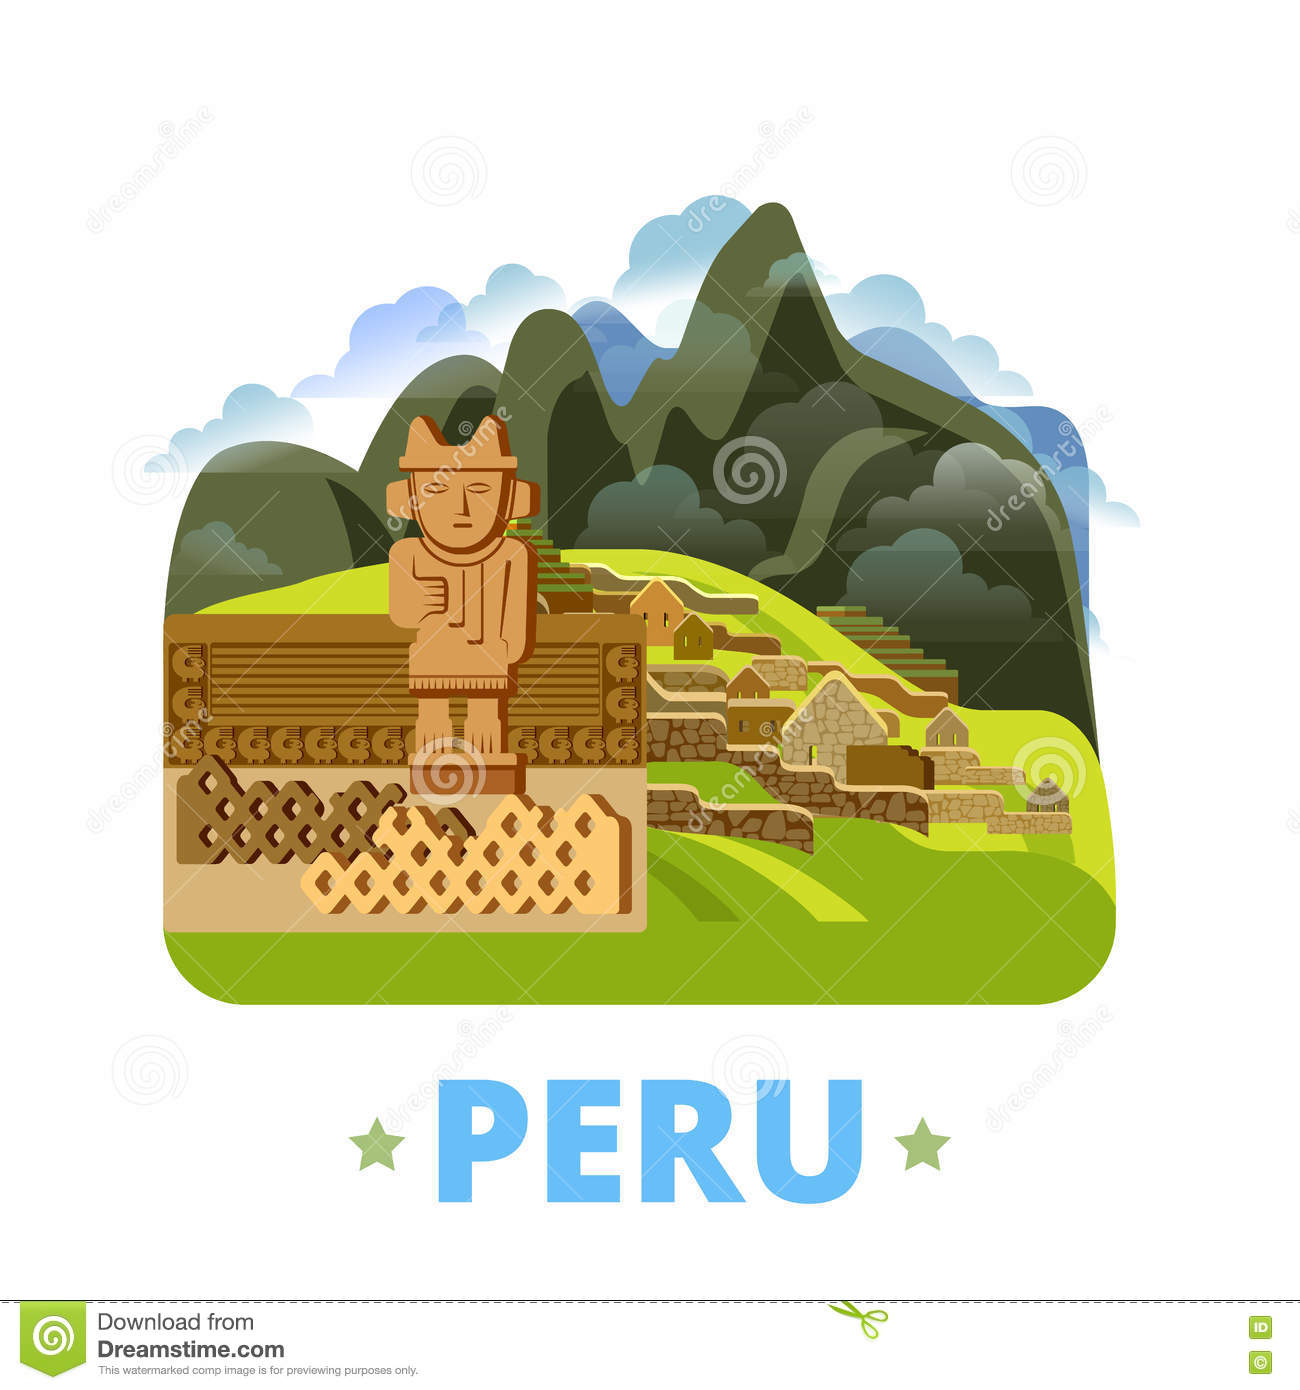 Peru country design template Flat cartoon style we